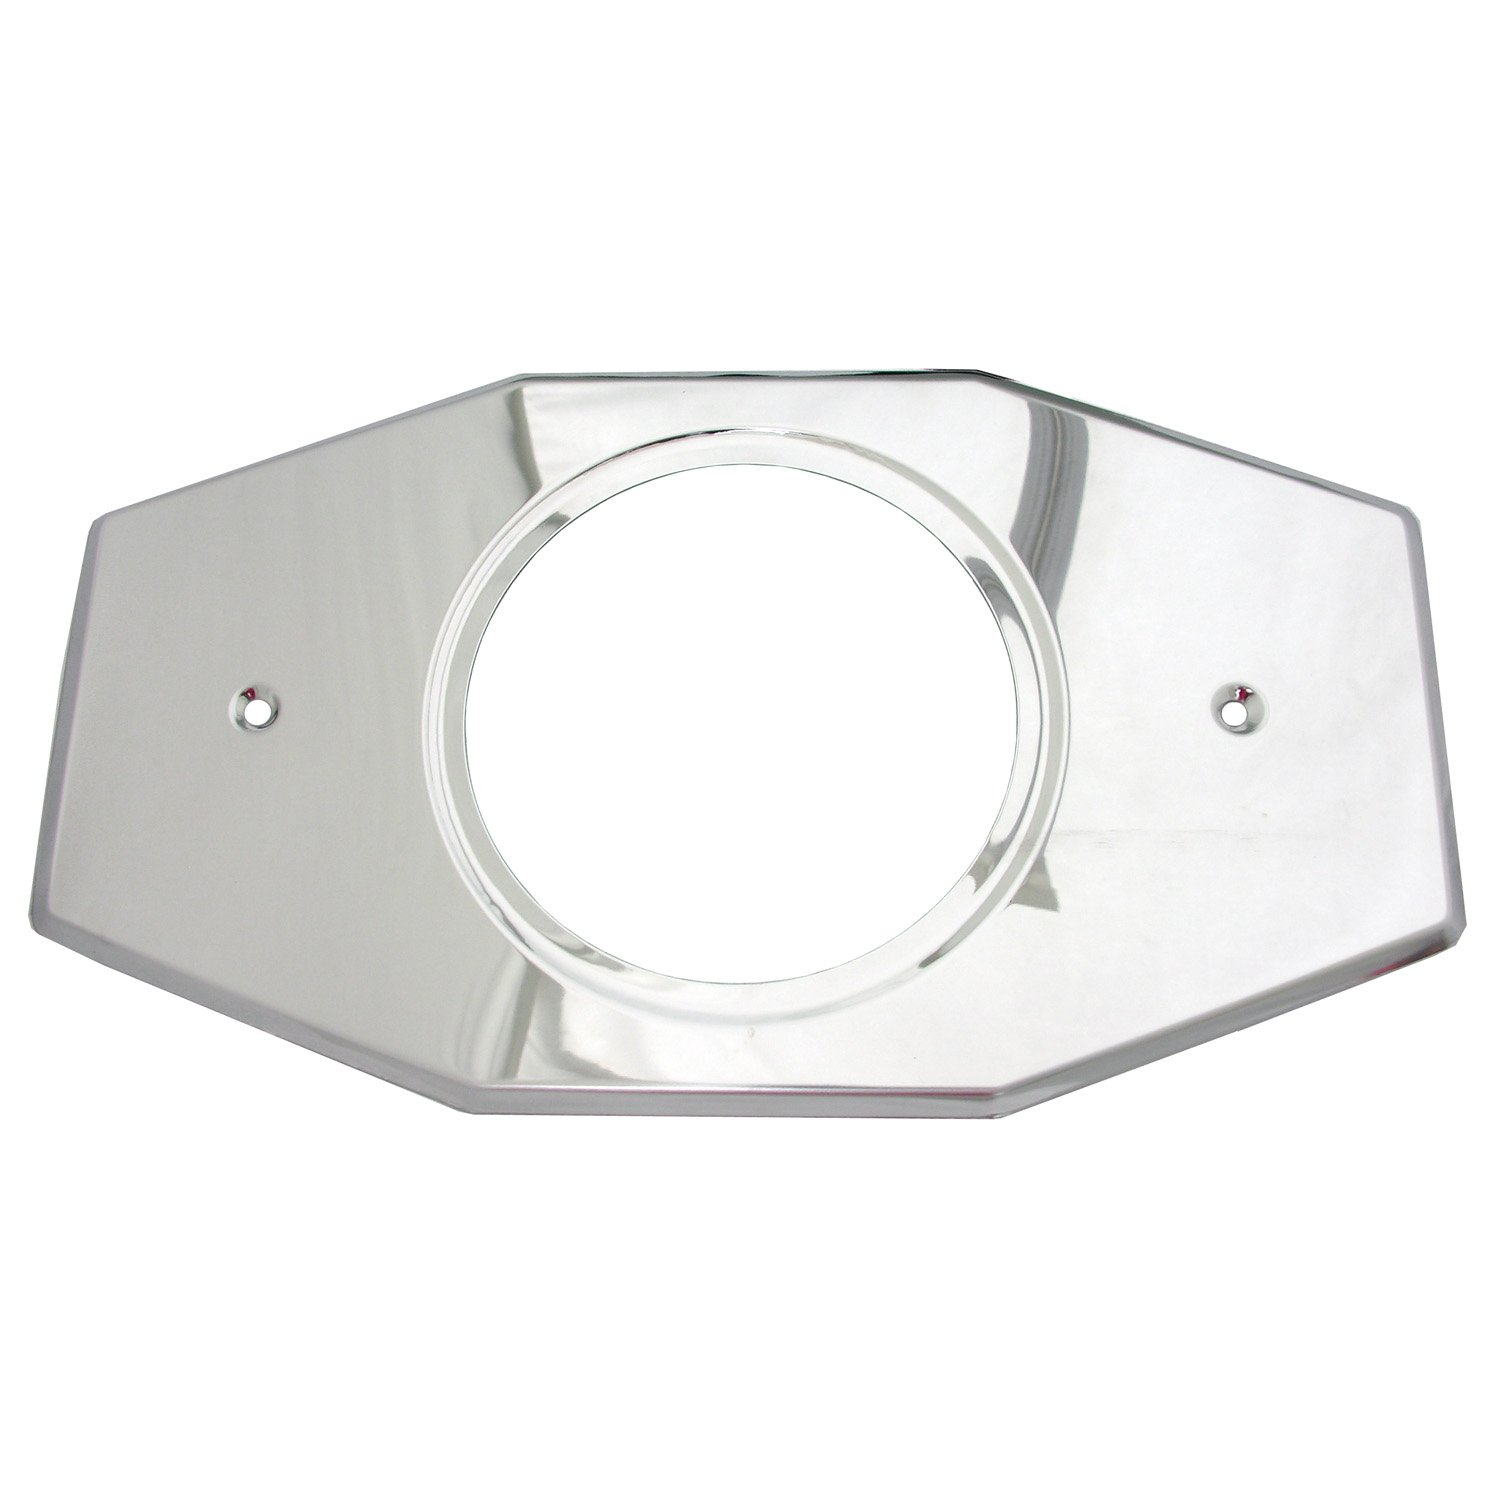 Simpatico 31657C Stainless Steel, Remodel Plate Fits Single Handle Delta or Moen Valves, Chrome Plated